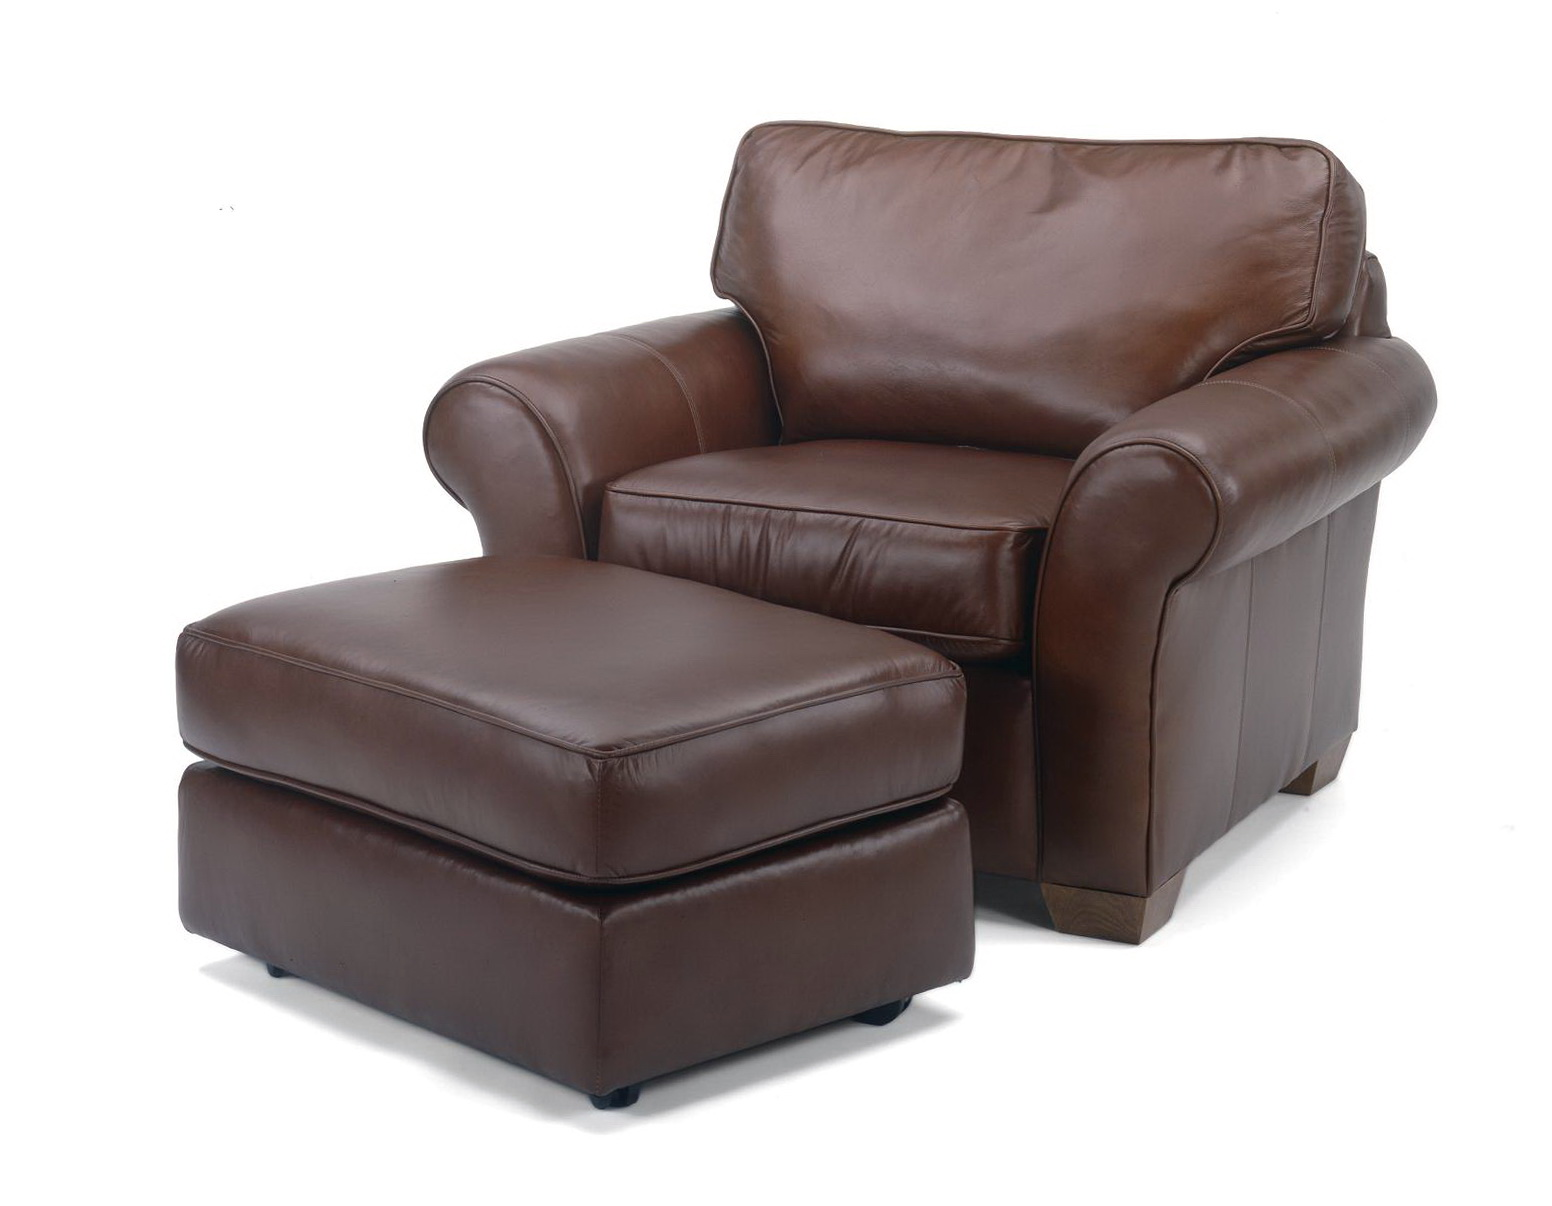 Oversized Leather Chair With Ottoman  Home Design Ideas